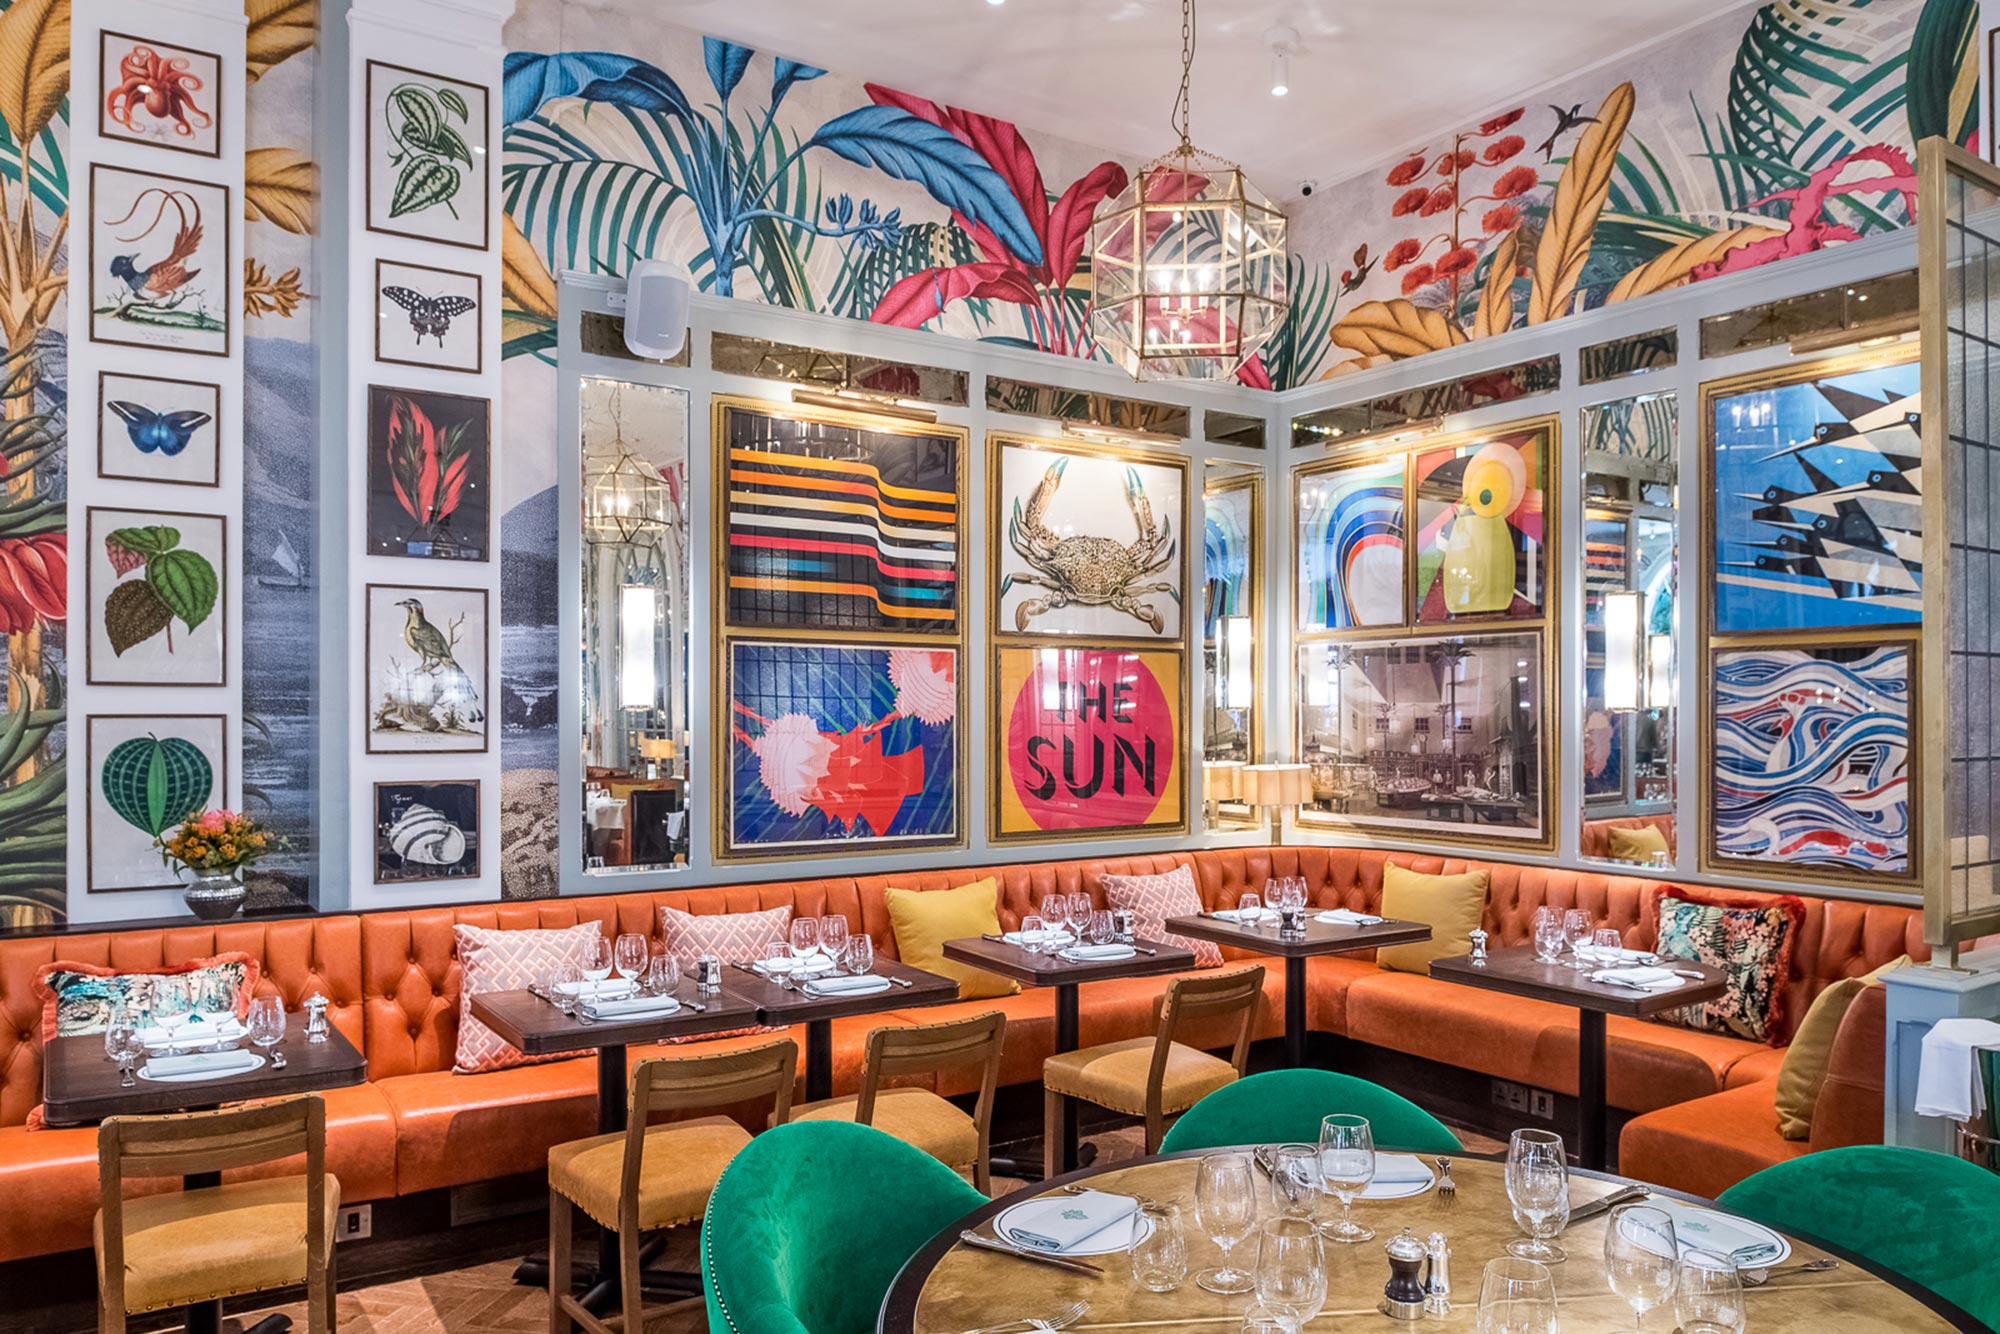 Dine out - Brighton's dining scene just keeps getting better and better. Located in the old post office, The Ivy in the Lanes is just one of the city's culinary newcomers. And while it may not be an independent restaurant, the gorgeously eclectic decor is pure Brighton, paying homage to the city's hedonistic spirit. The perfect place to head straight from us here at Shine for a spot of weekend brunch with friends and show off your swishy new hair. And do be sure to check out the loos, they alone deserve their own Pinterest board.